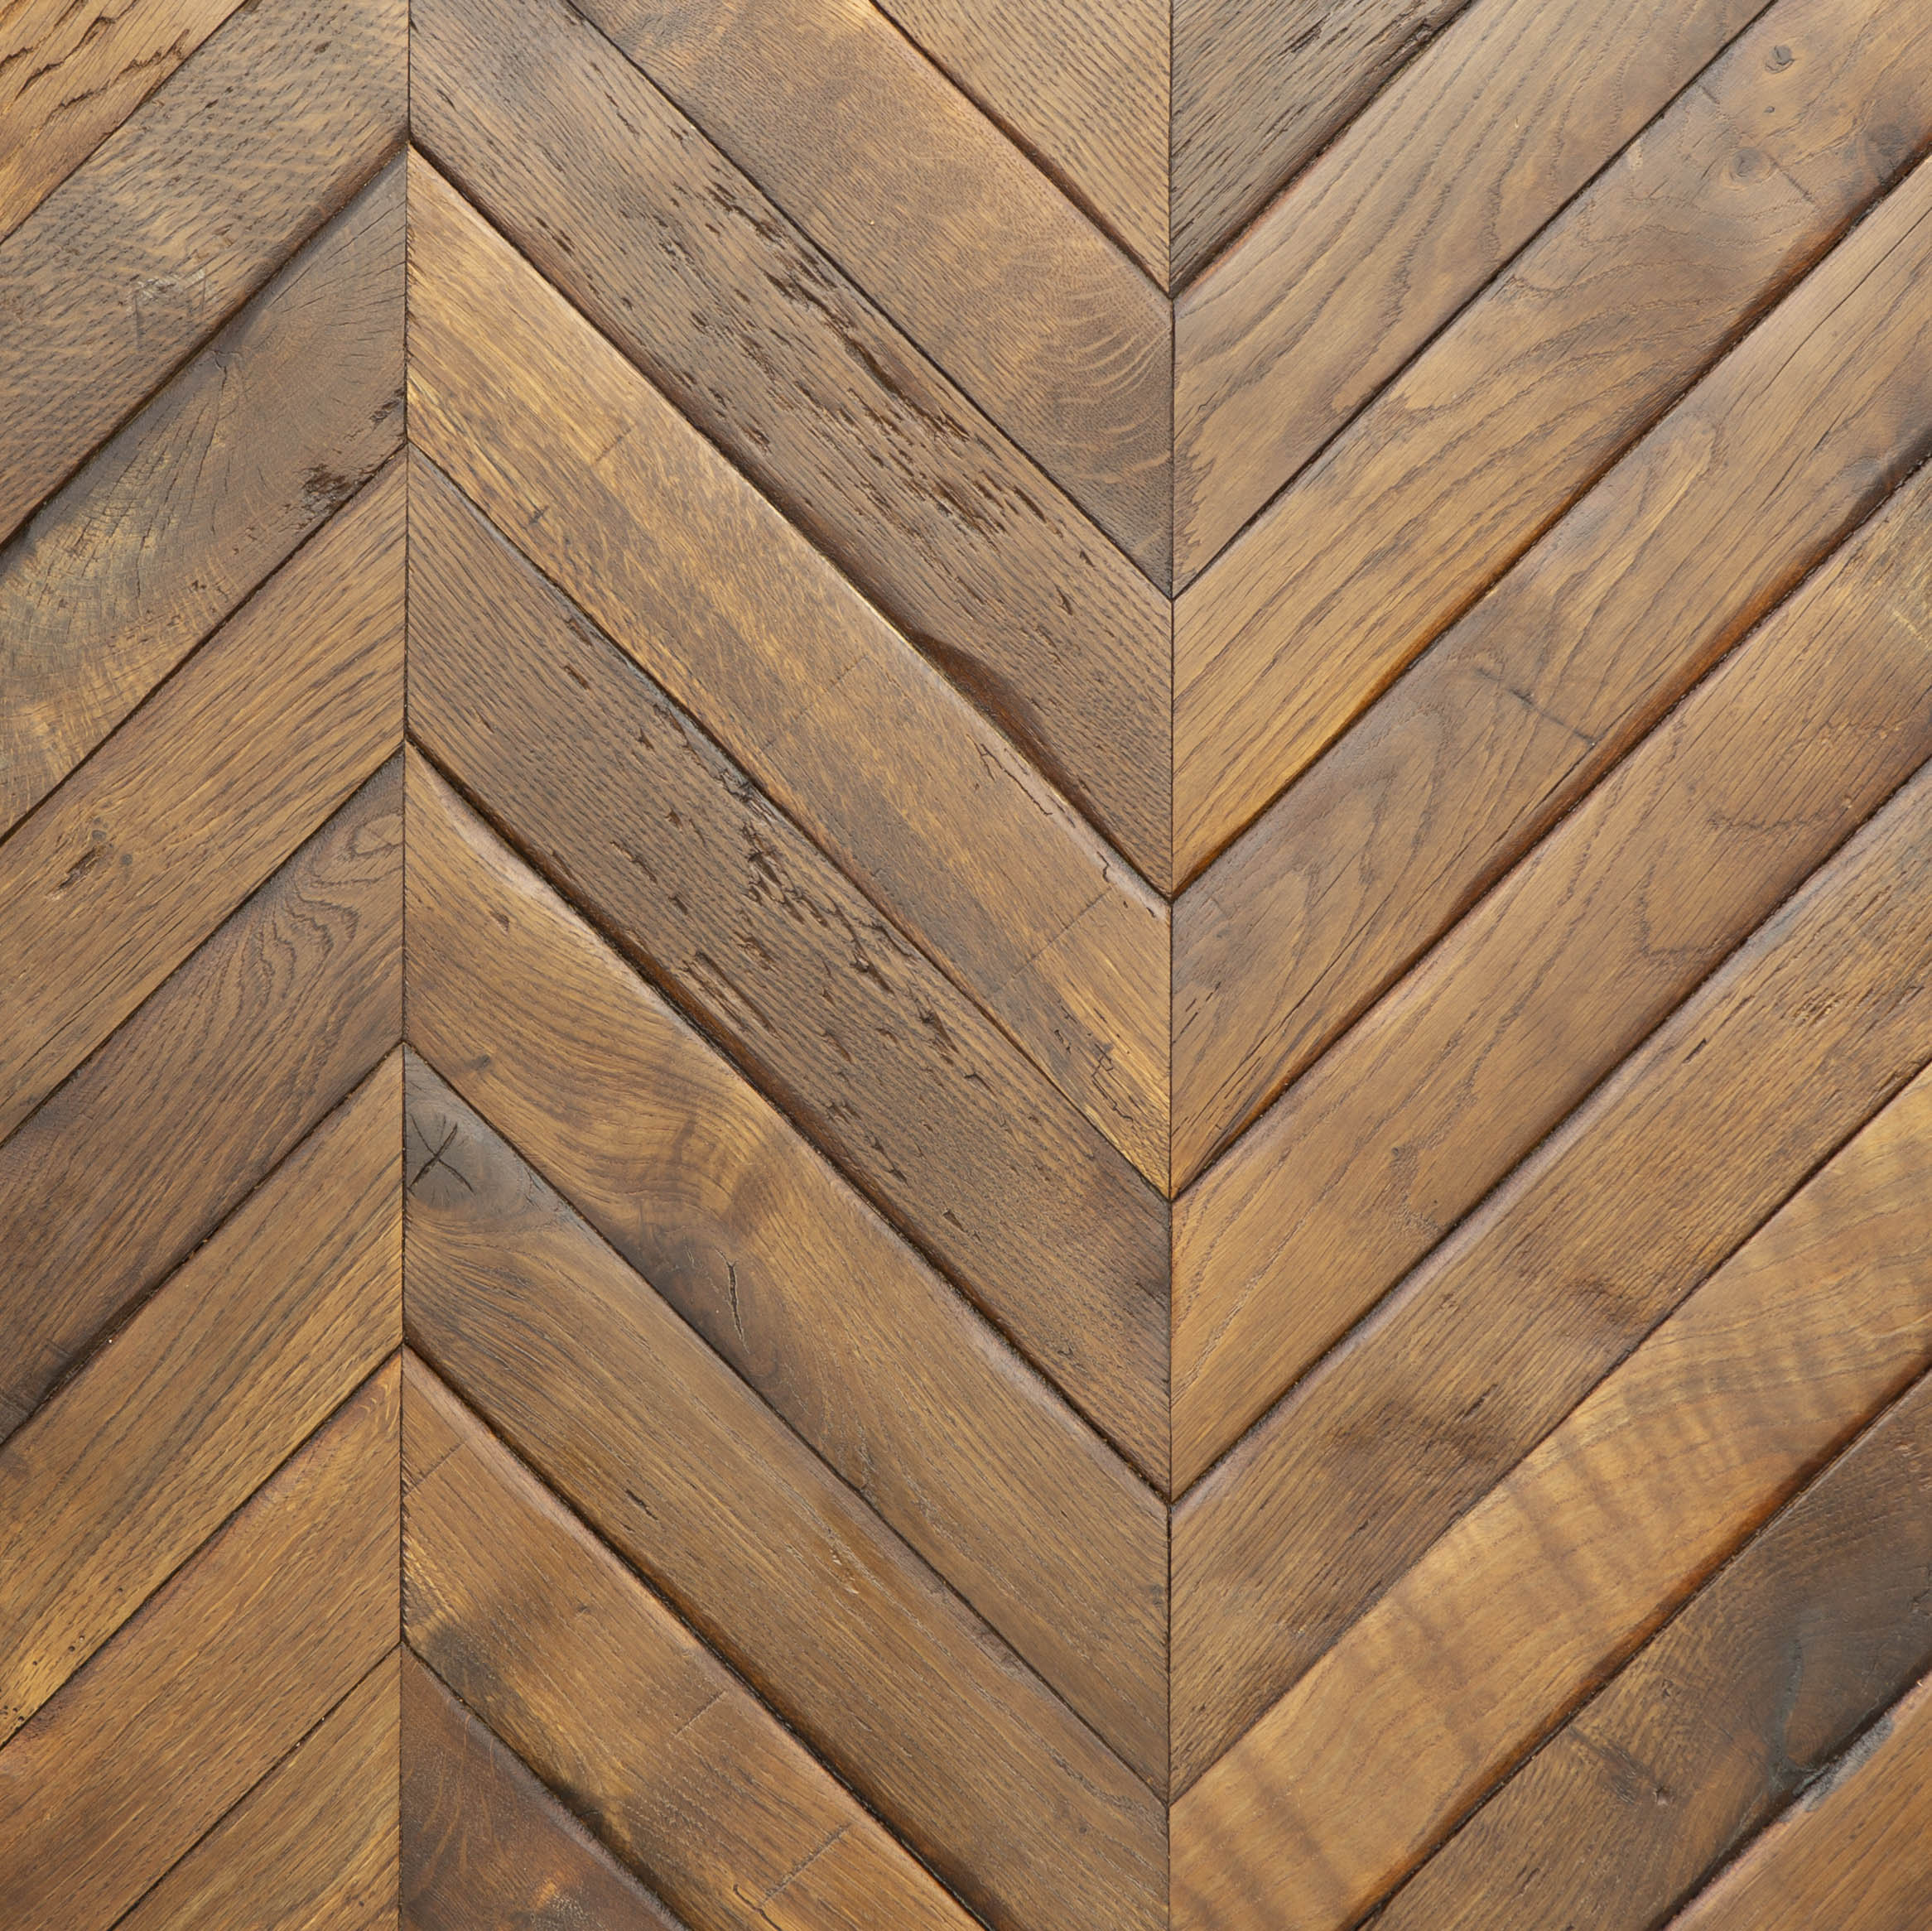 Reclaimed Antique Chevron